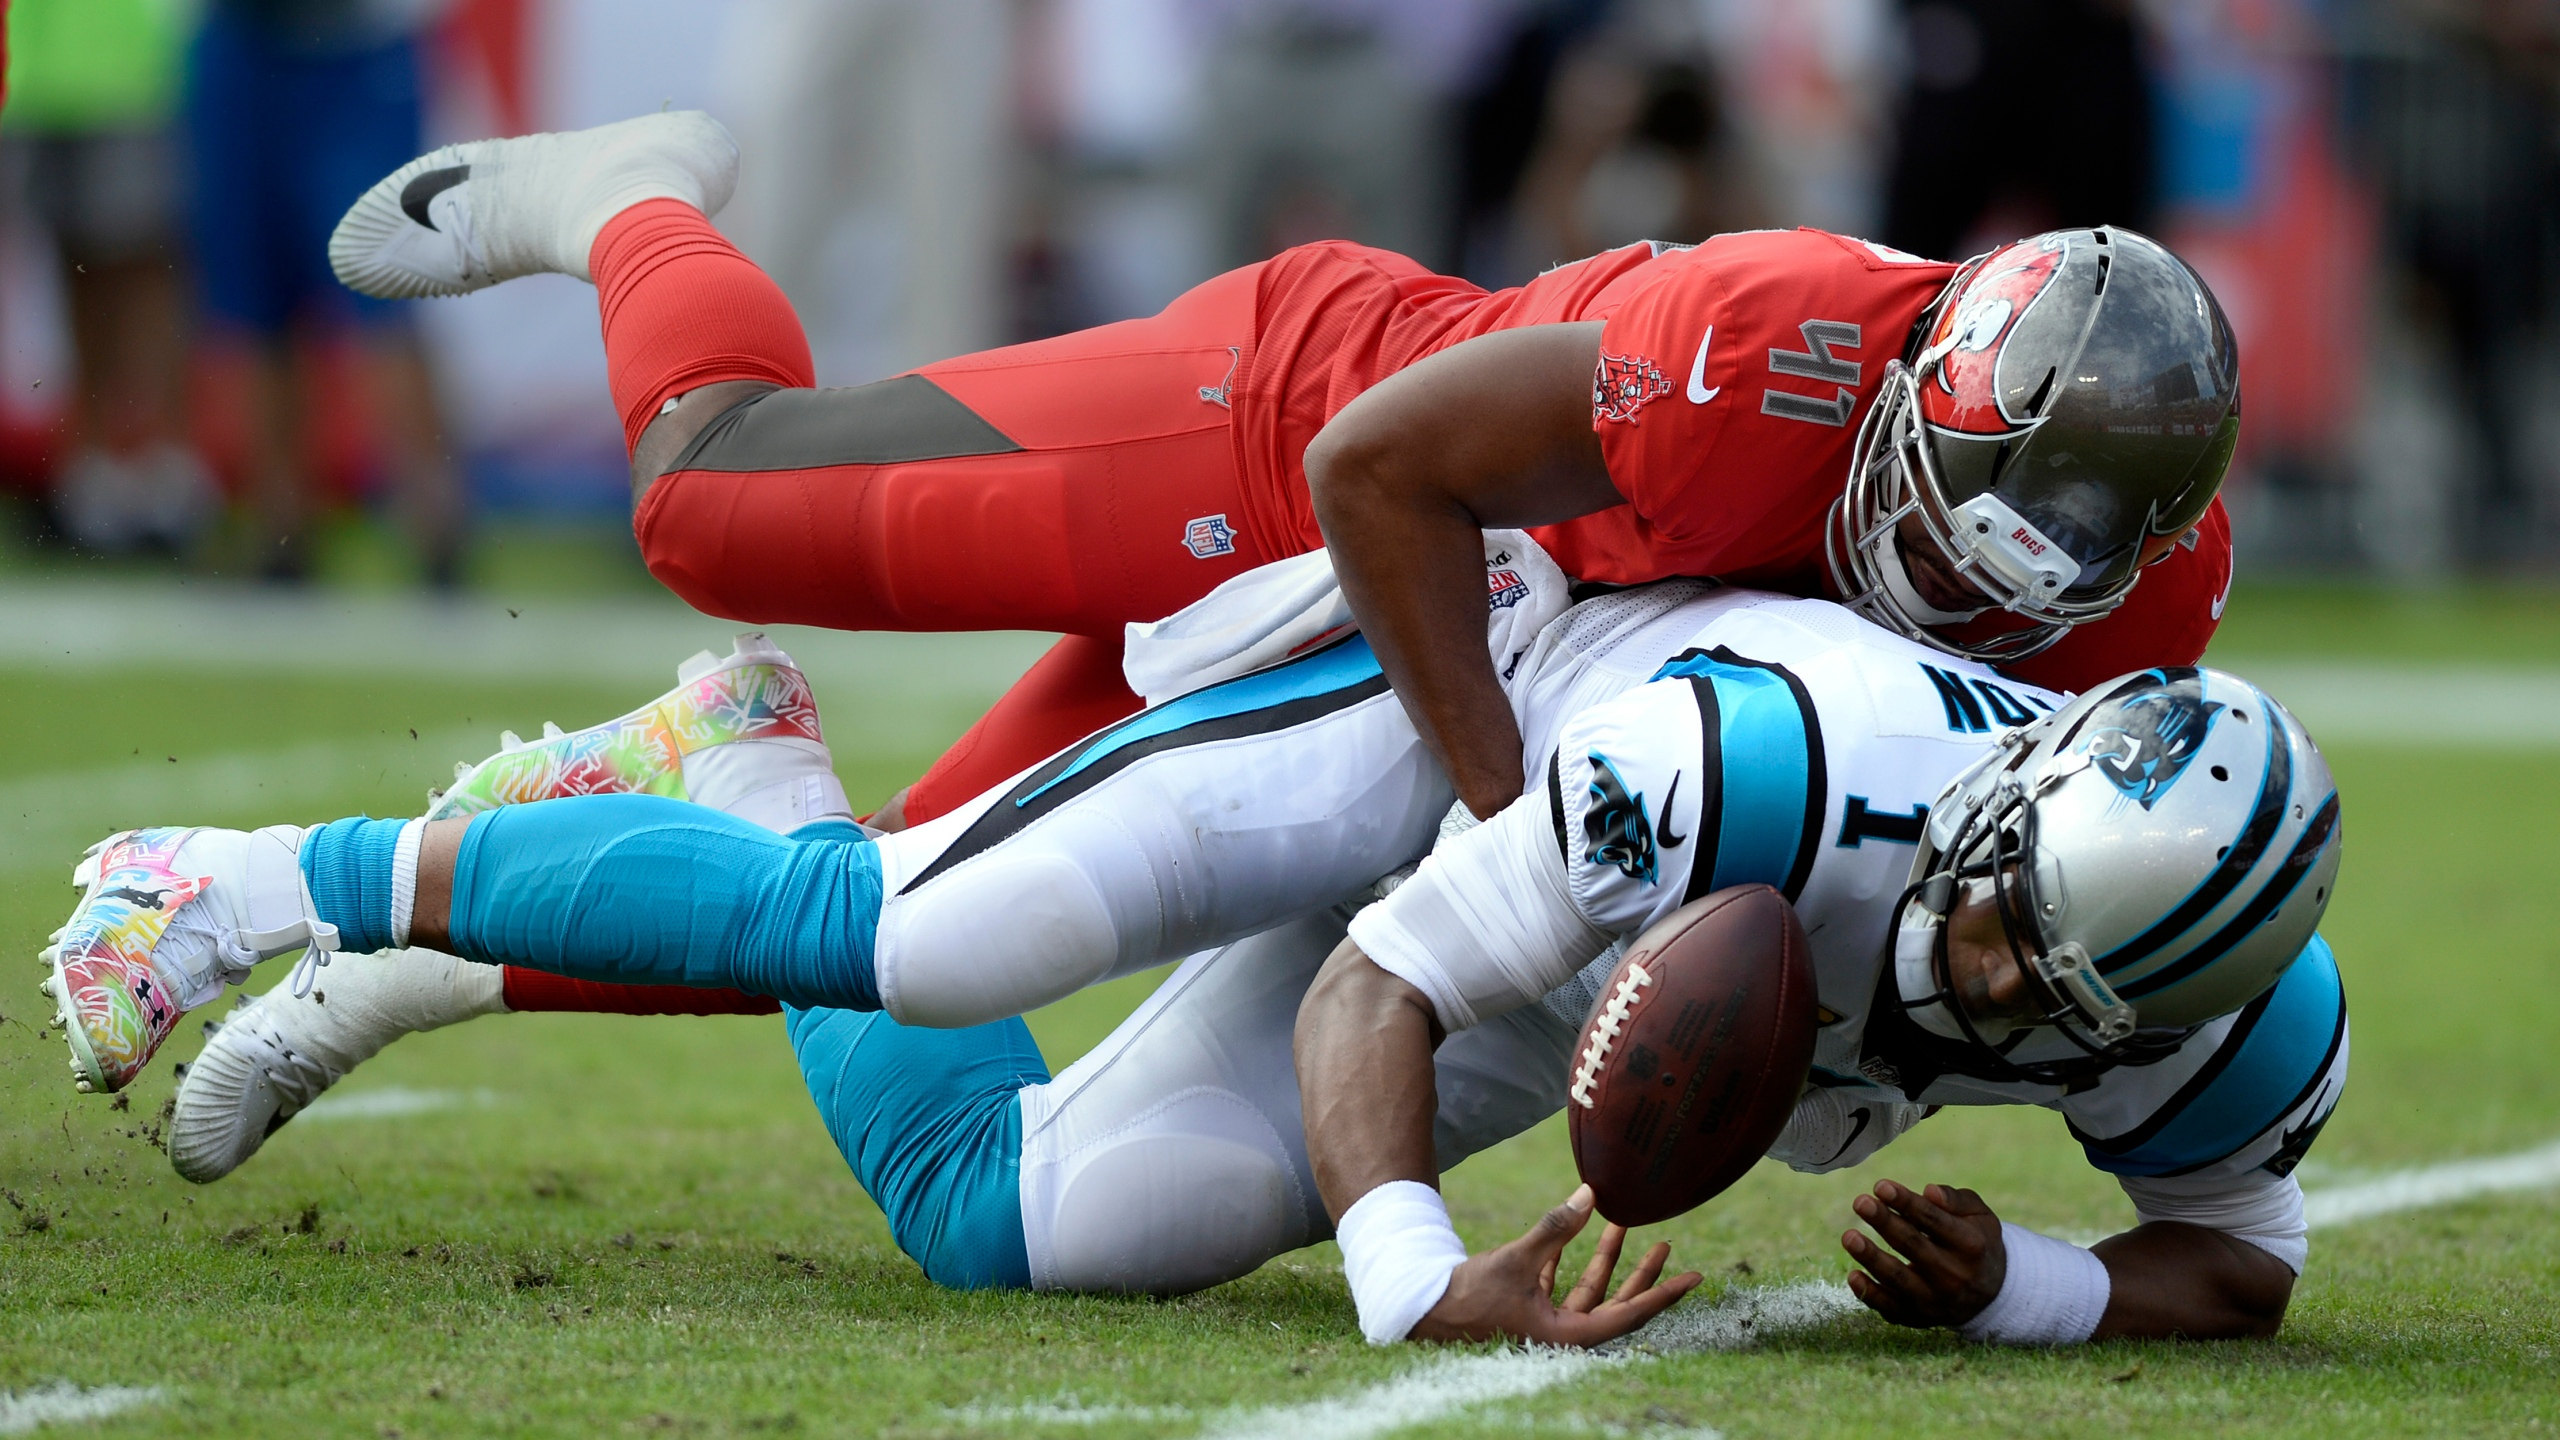 Cam Newton Panthers Buccaneers Football_1544241795757-873704001